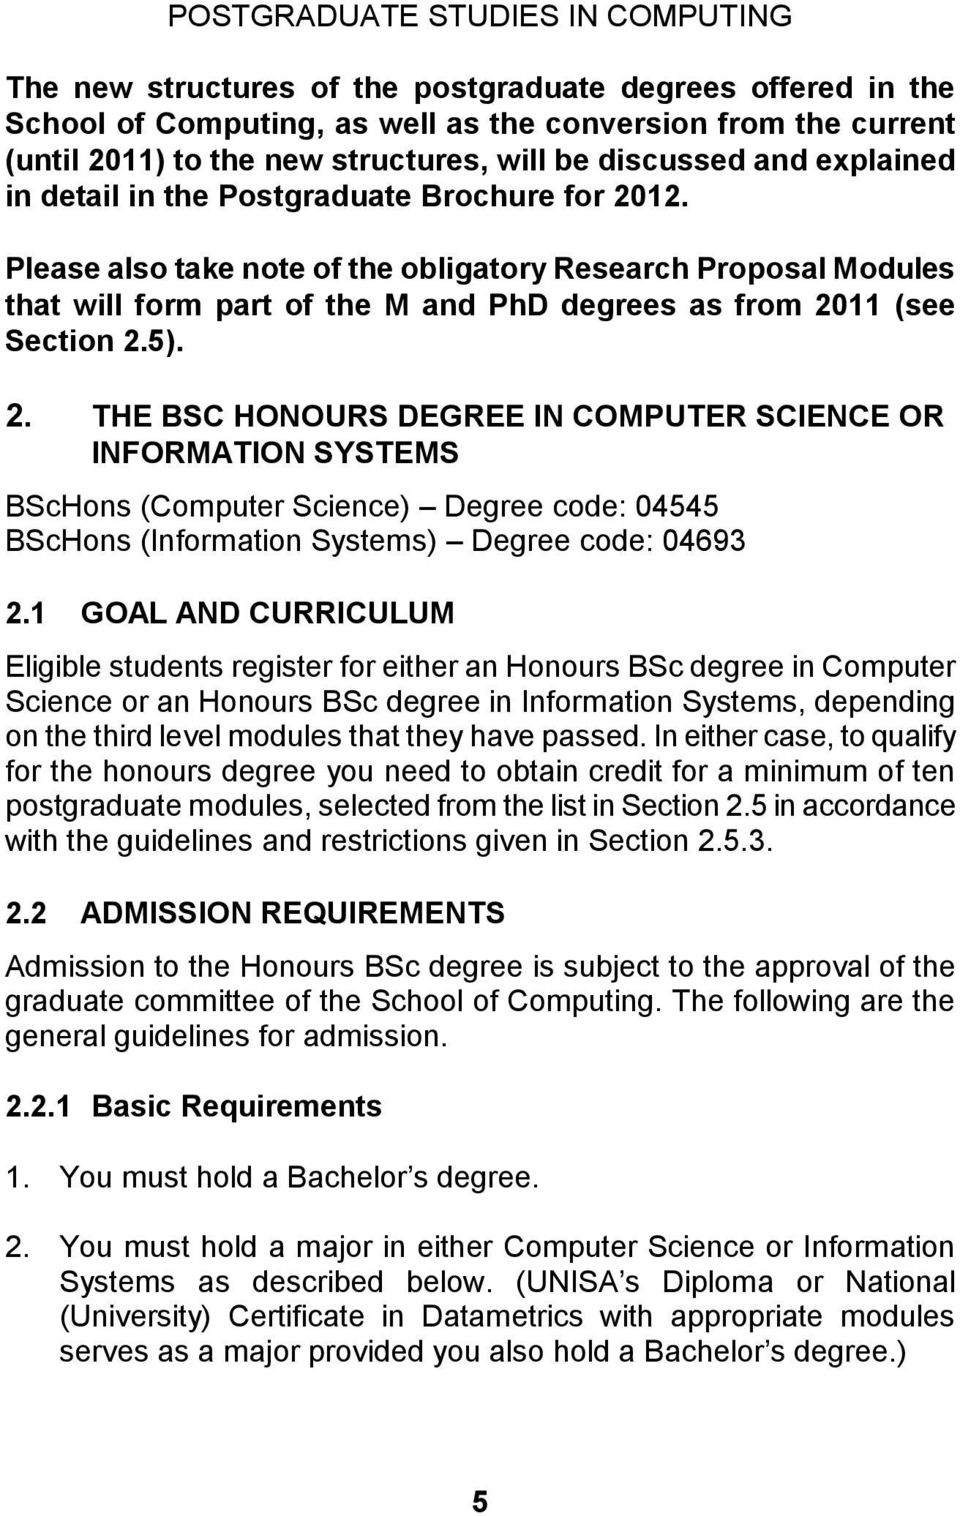 good thesis proposal computer science